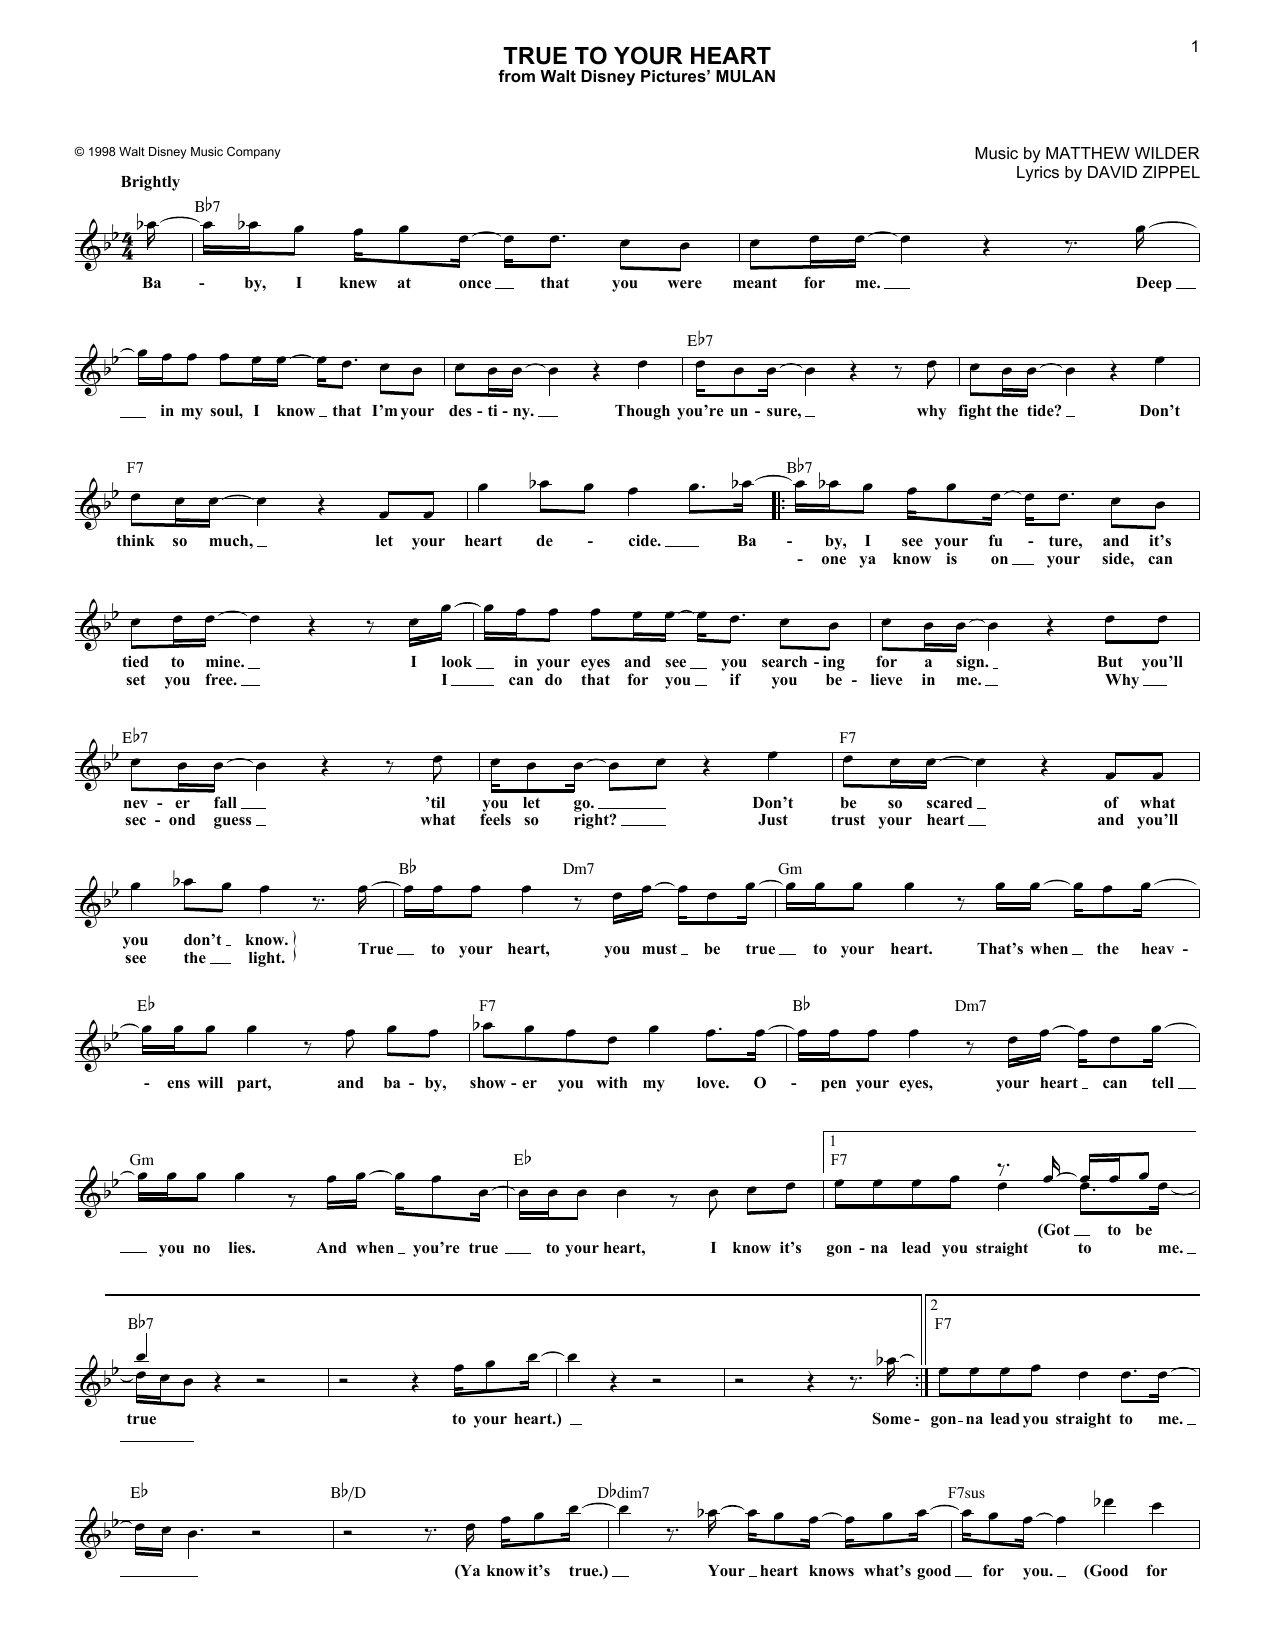 98 Degrees & Stevie Wonder True To Your Heart (from Mulan) sheet music notes and chords. Download Printable PDF.